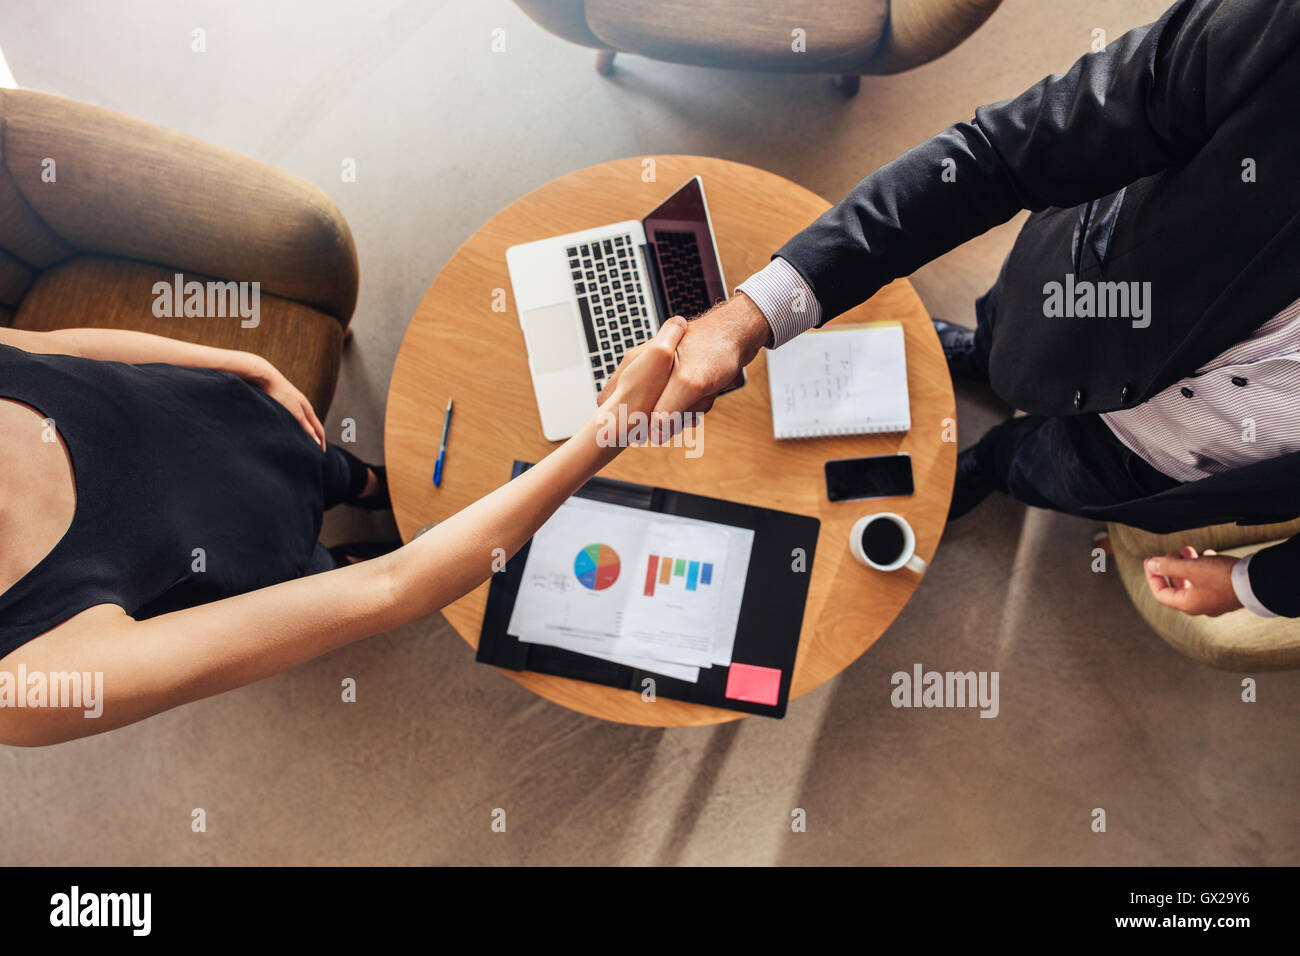 Top view of young business partners shaking hands over deal at office. Focus on handshake. - Stock Image